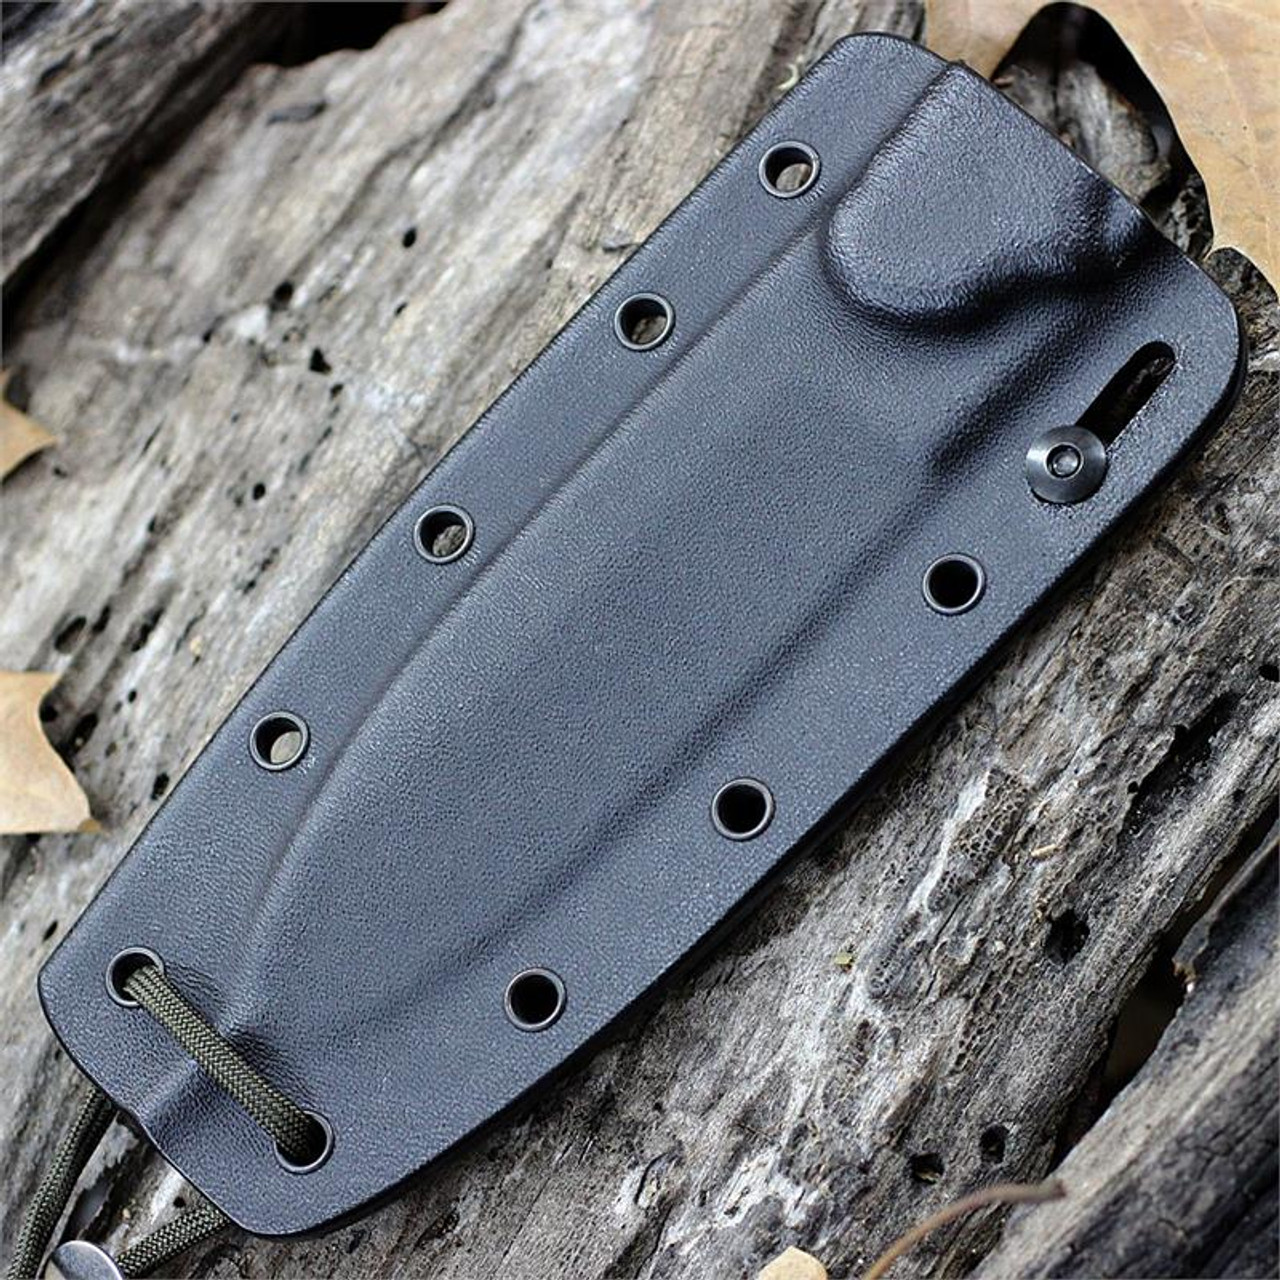 ESEE Knives Laser Strike Kydex Sheath, Black